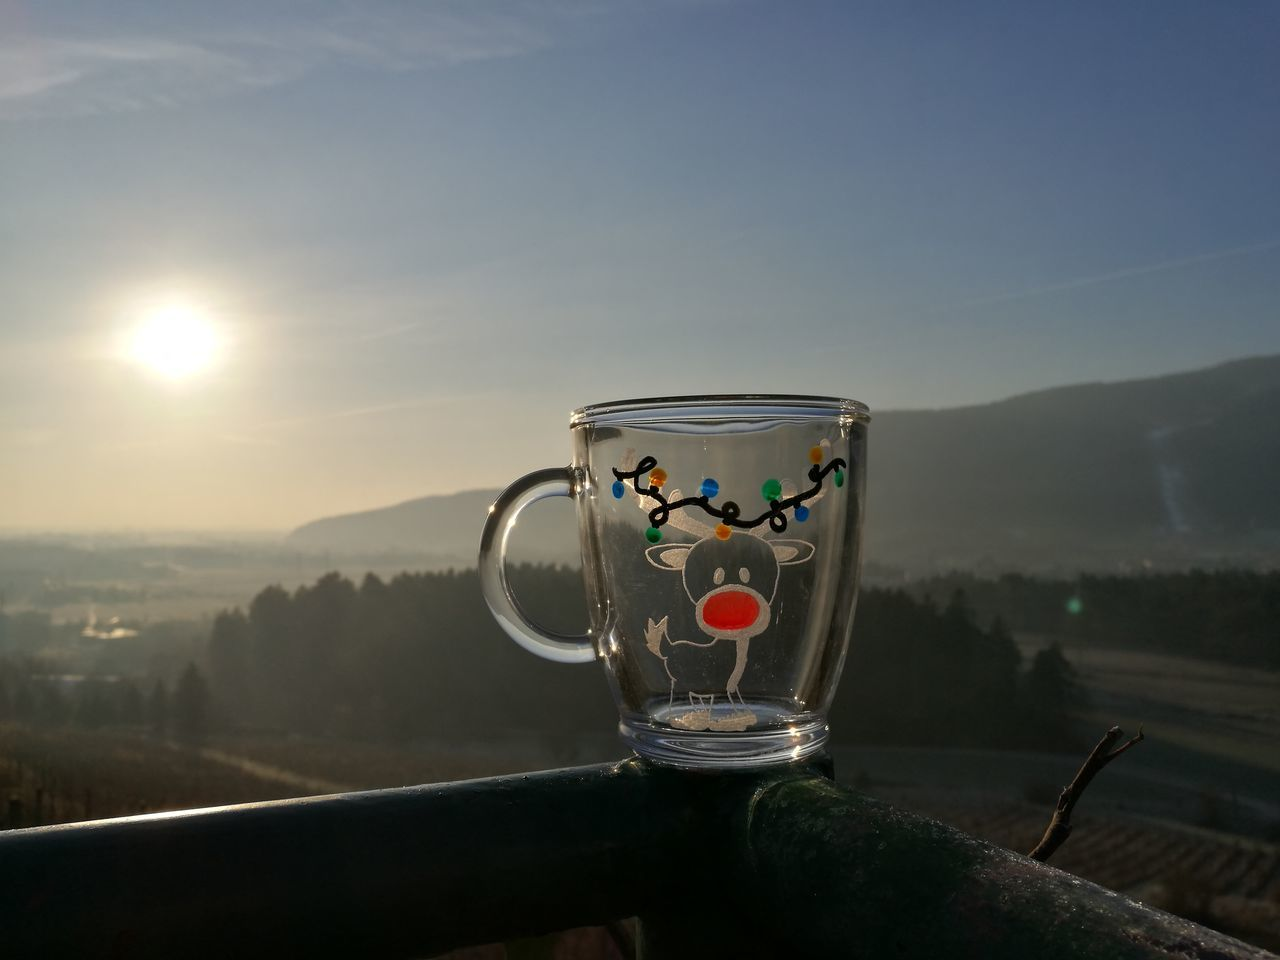 drink, refreshment, food and drink, no people, drinking glass, mountain, mountain range, sunset, close-up, scenics, water, outdoors, freshness, sky, nature, day